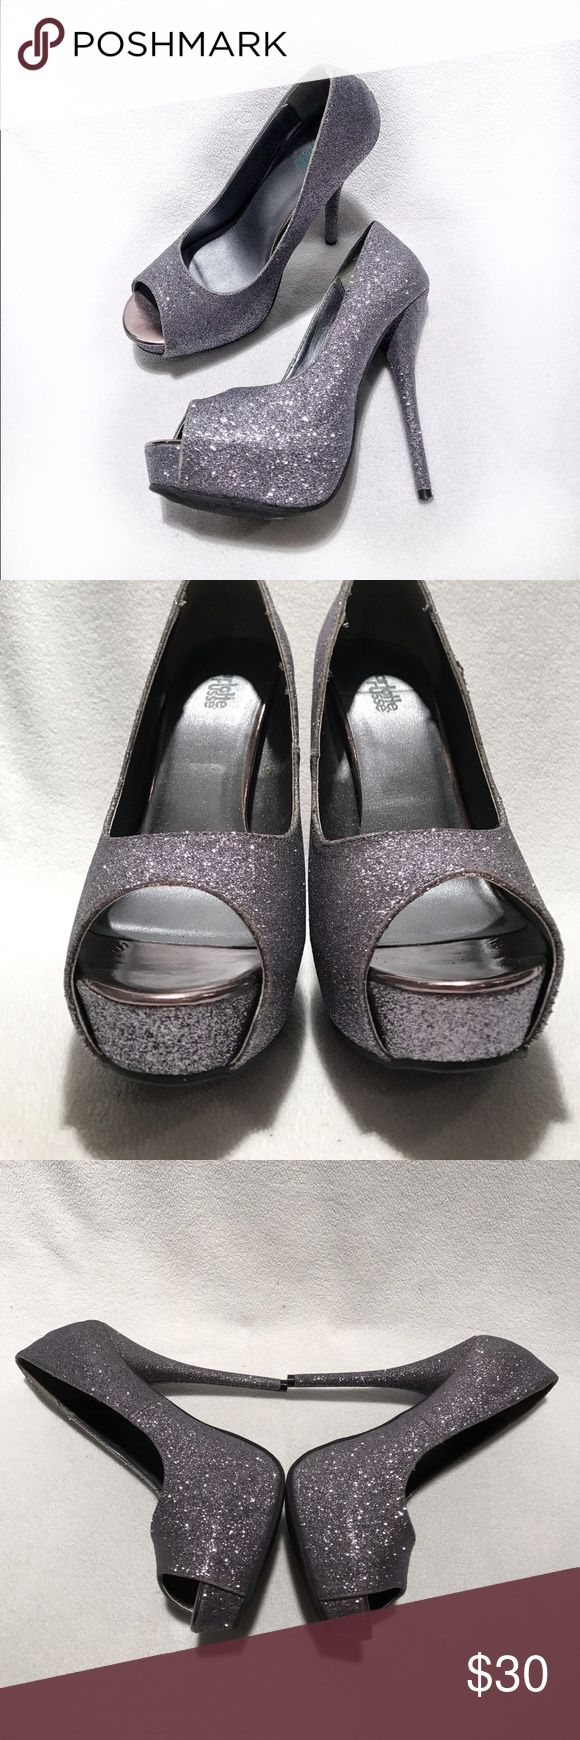 🆕Charlotte Russe • Glittery Open Toe Heels Worn   Excellent Condition   Glittery   Open Toe   Stiletto Heel   Only Sign of Wear on Bottom   🚫 Trades   More 📸 Upon Request   Ask Any Questions Needed To Help With Decision 🙋🏽  Bundles & Offers Are Welcomed ❤️  Charlotte Russe Shoes Heels